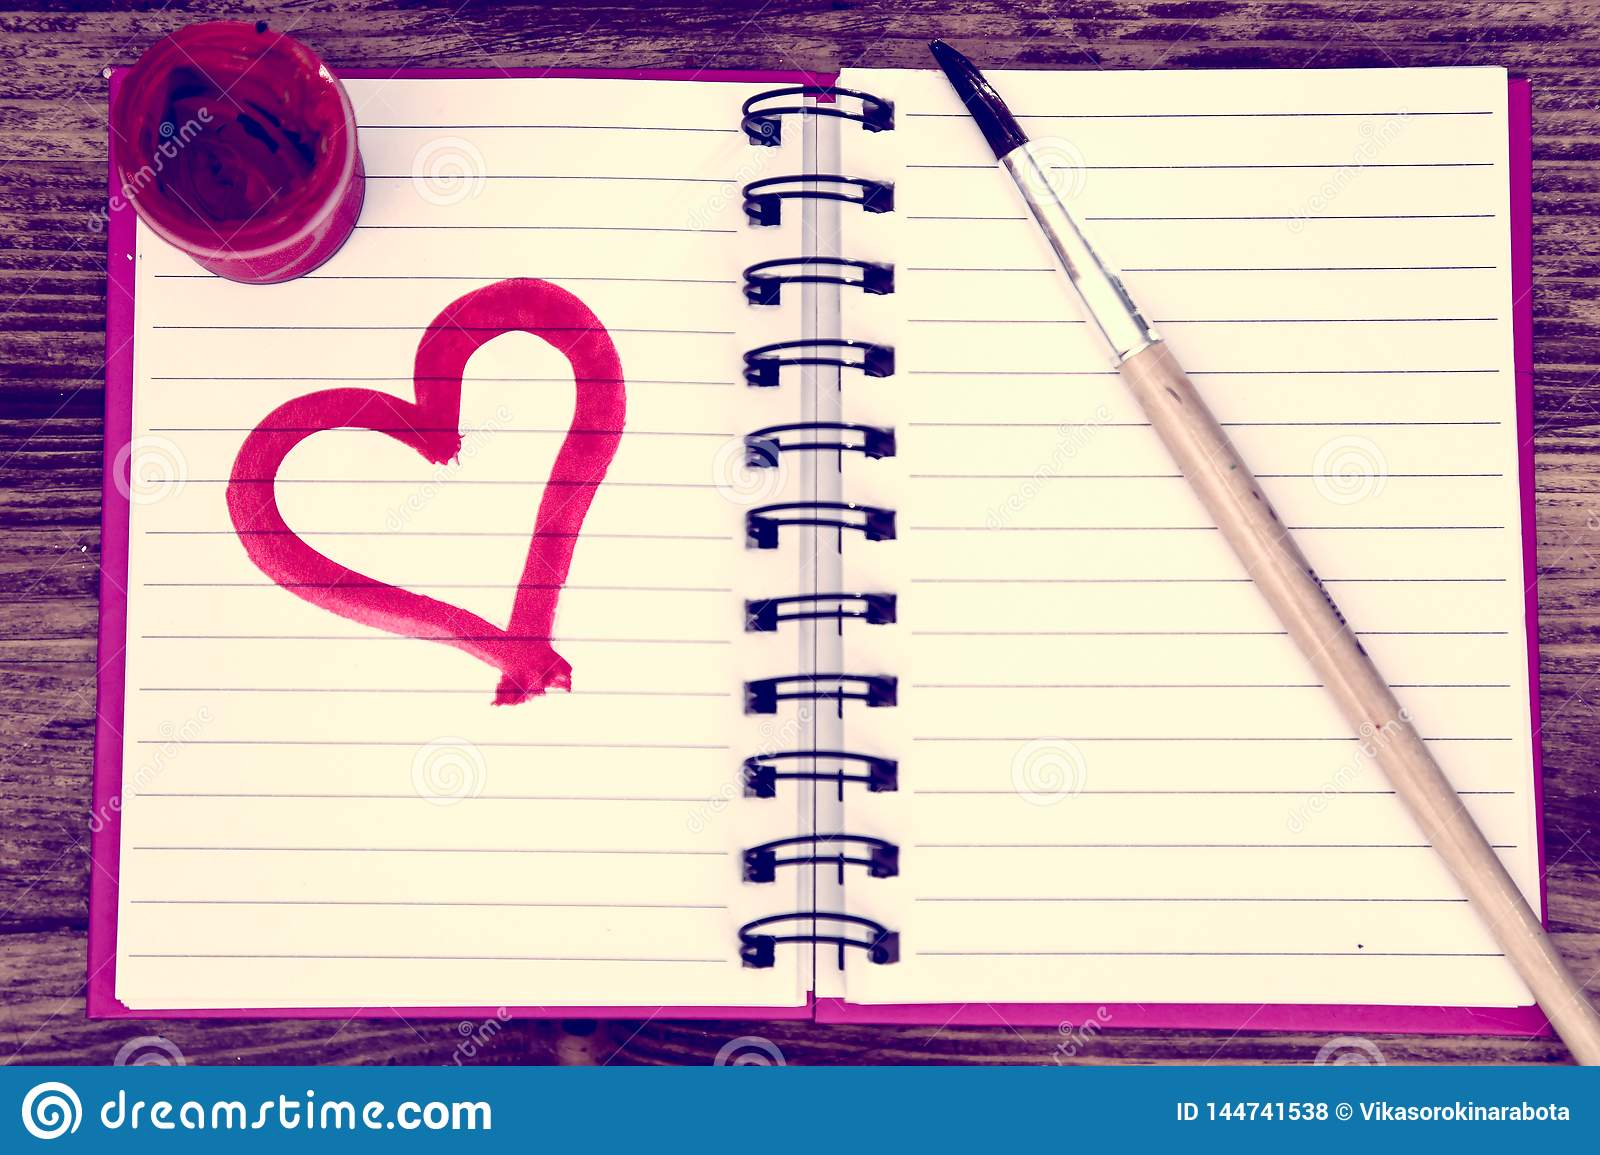 On the table is an open pink notebook; a notebook on which is painted with a paint brush and a pink heart